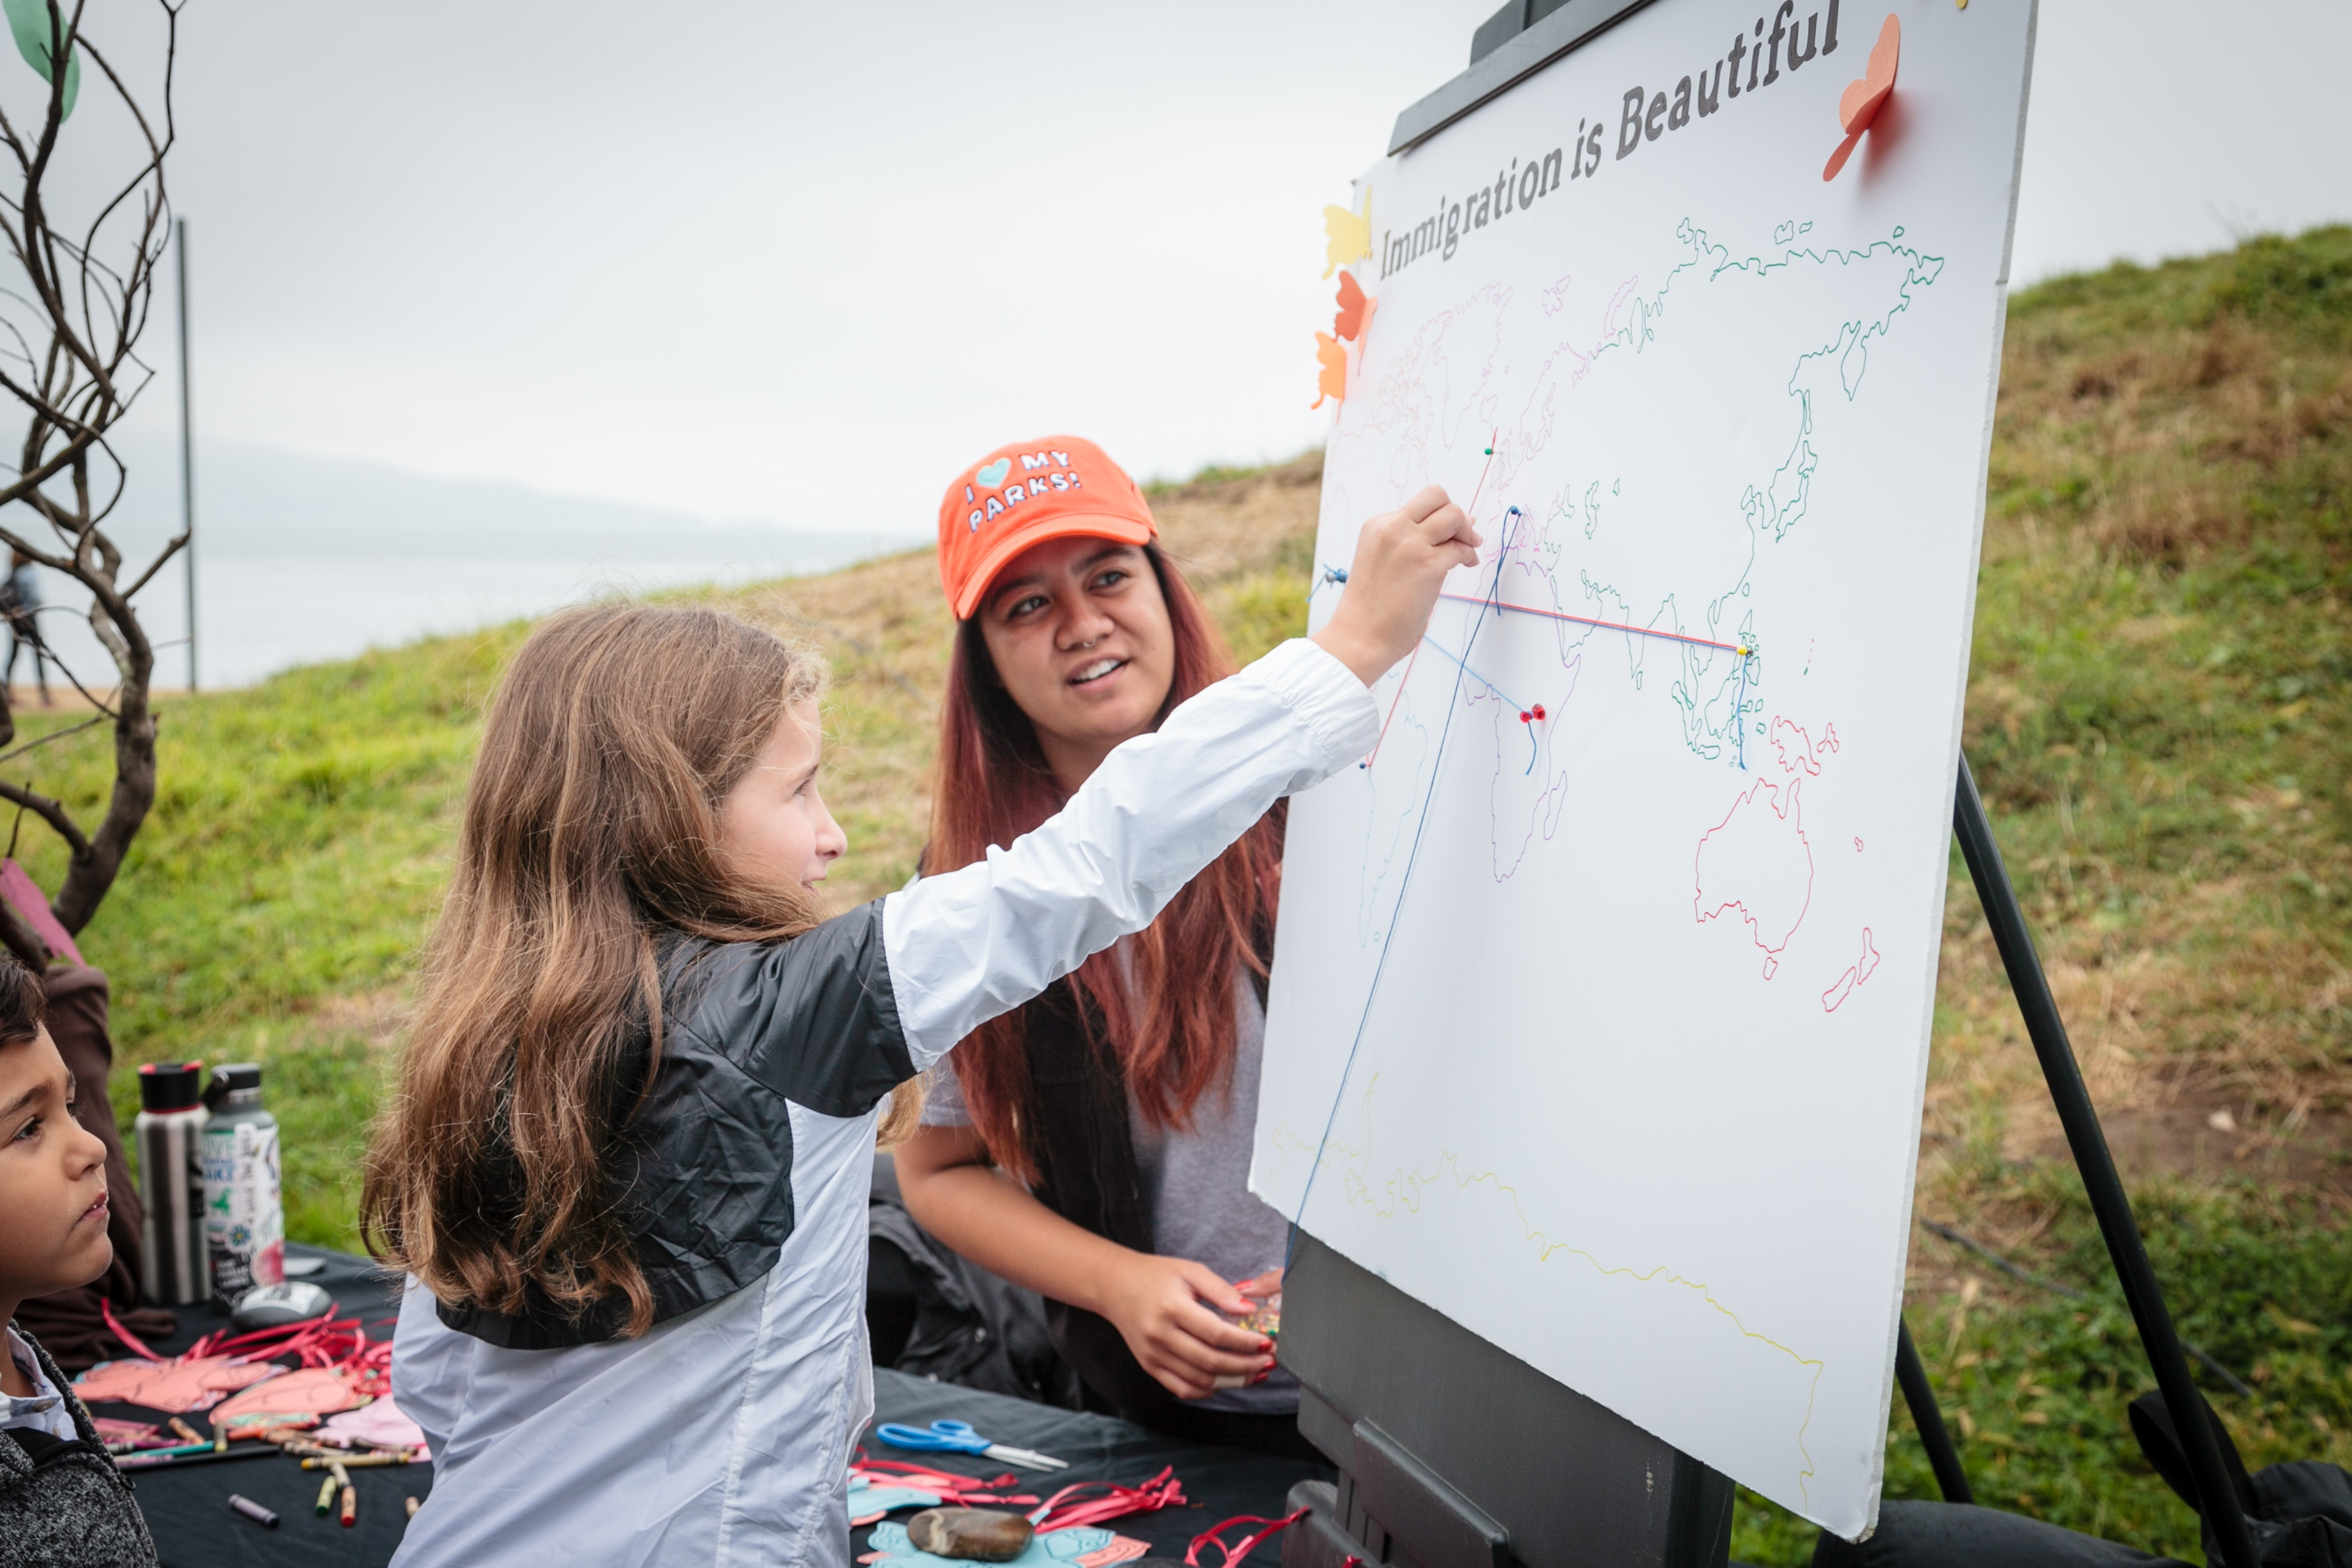 A volunteer from the Parks Conservancy looks on while a child marks her family's country of origin.